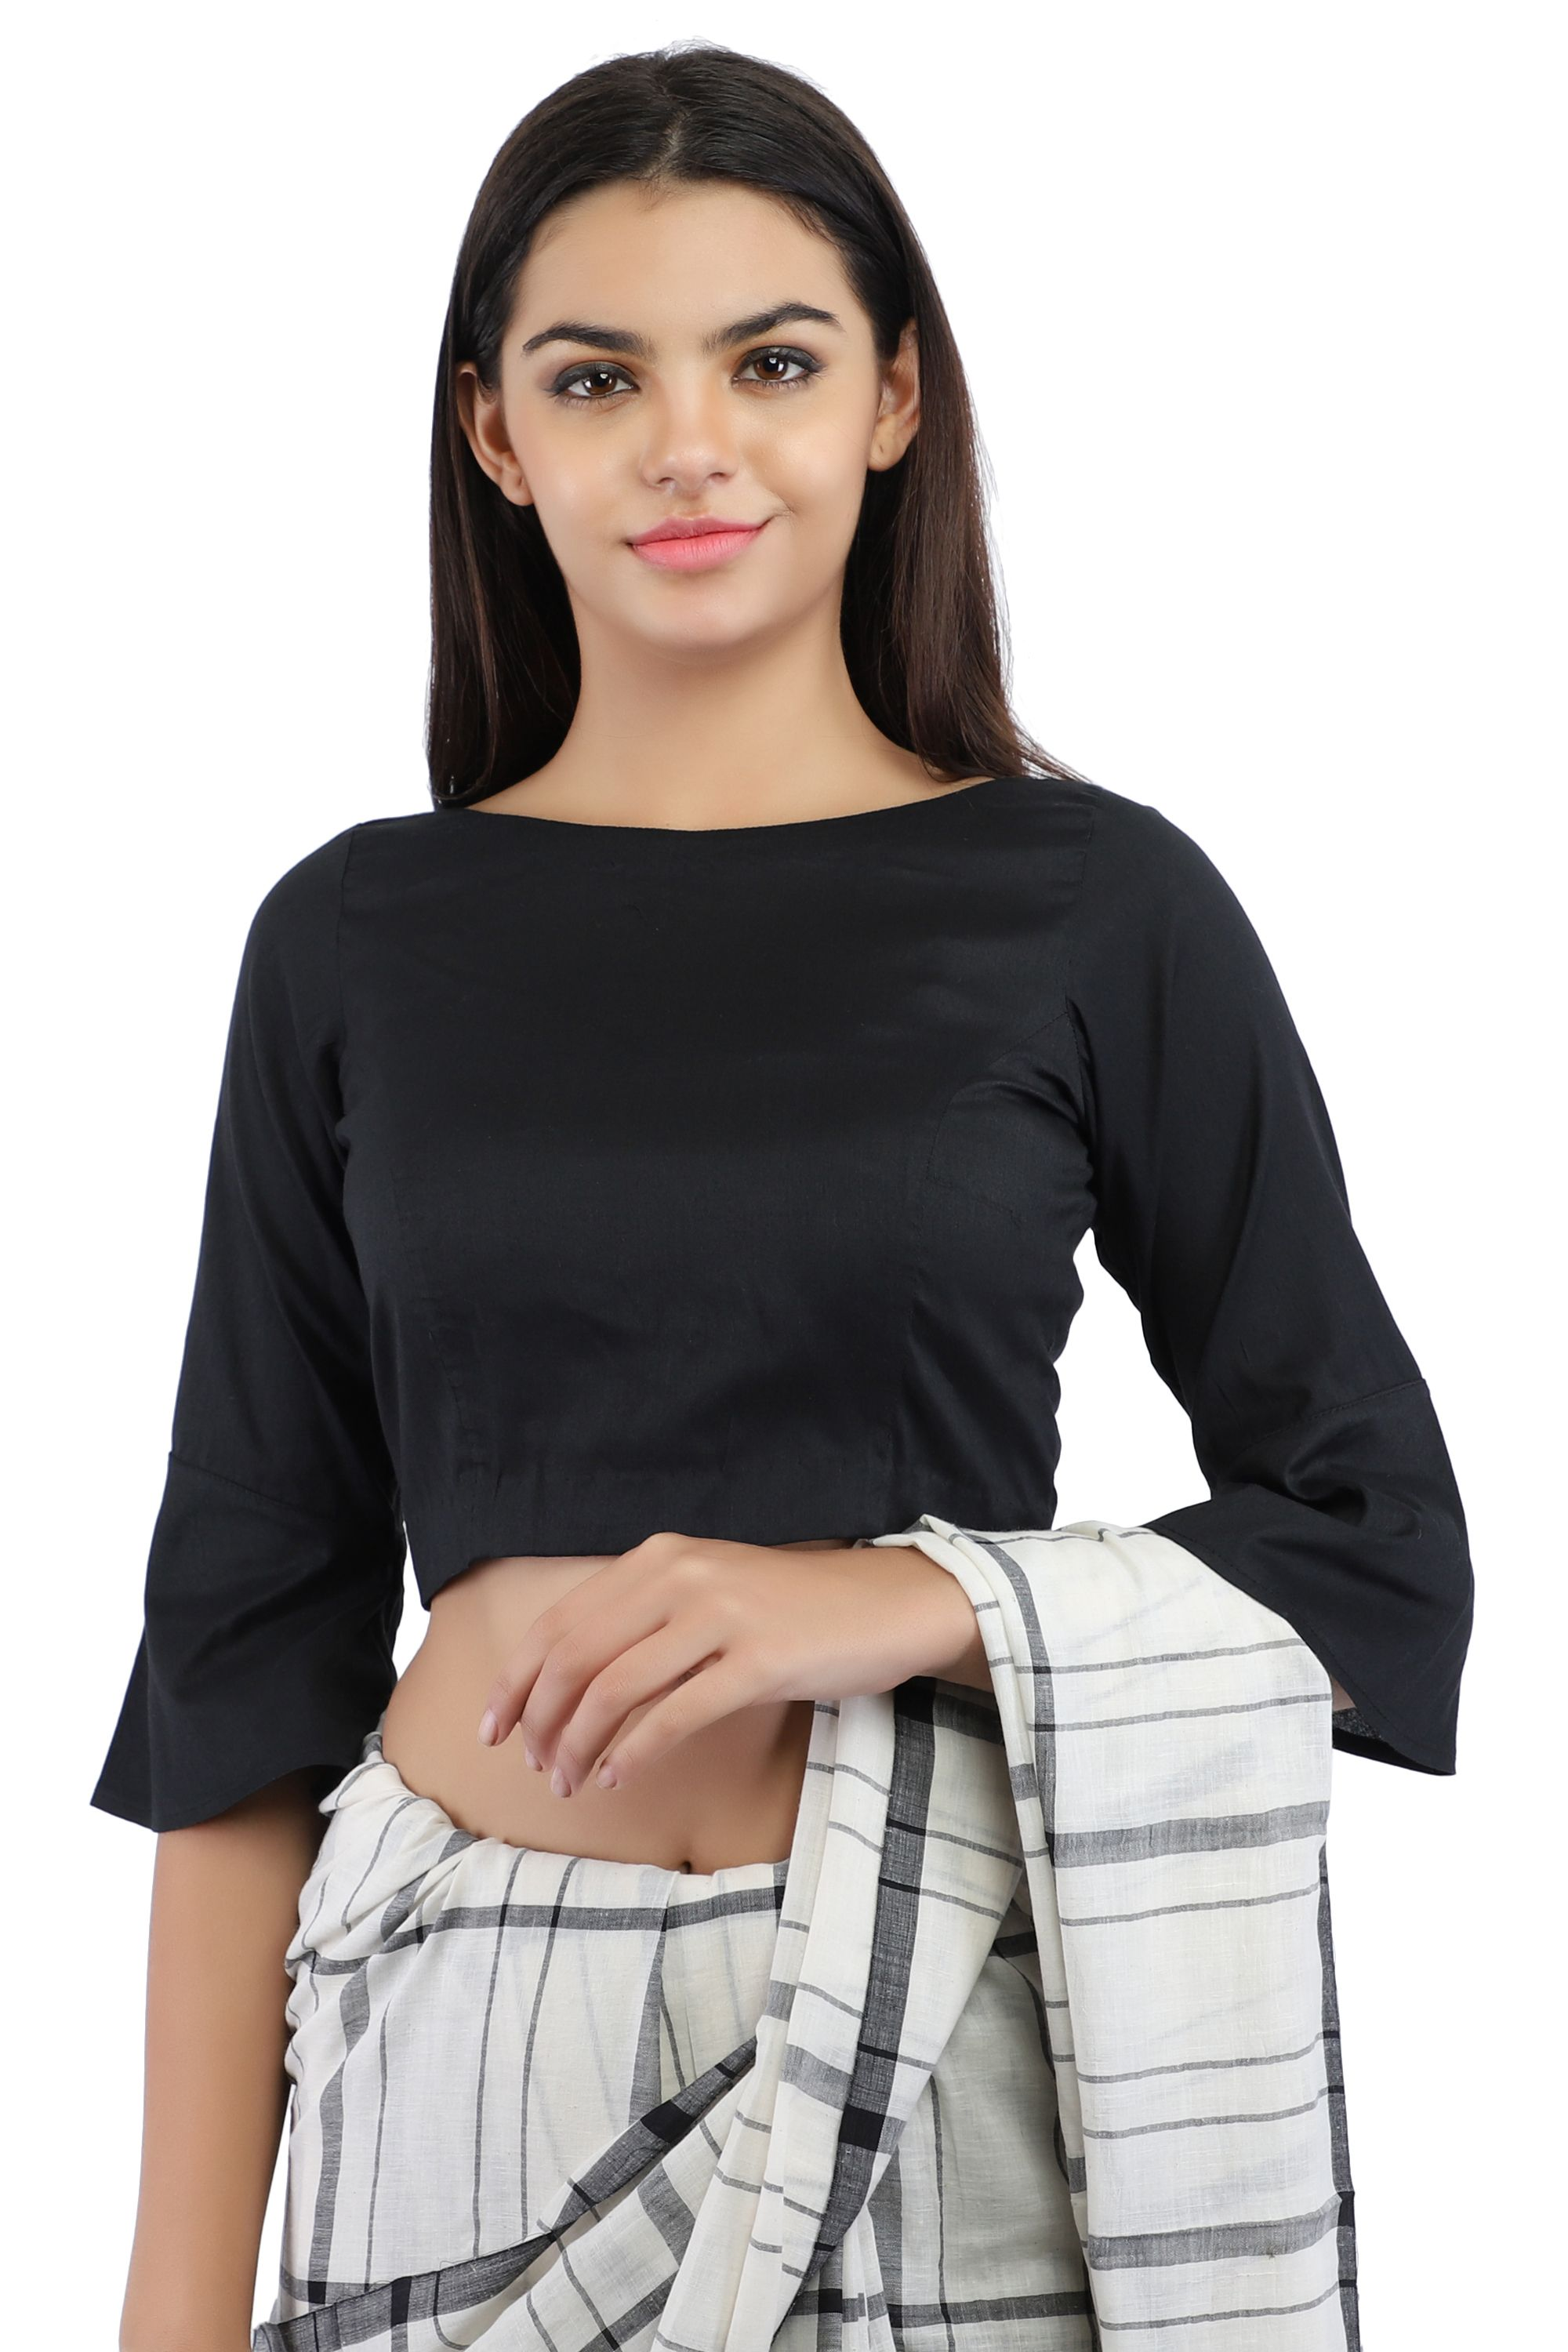 Black Cotton Silk Non-Padded Back Open Blouse in Boat Neck With Bell Sleeve